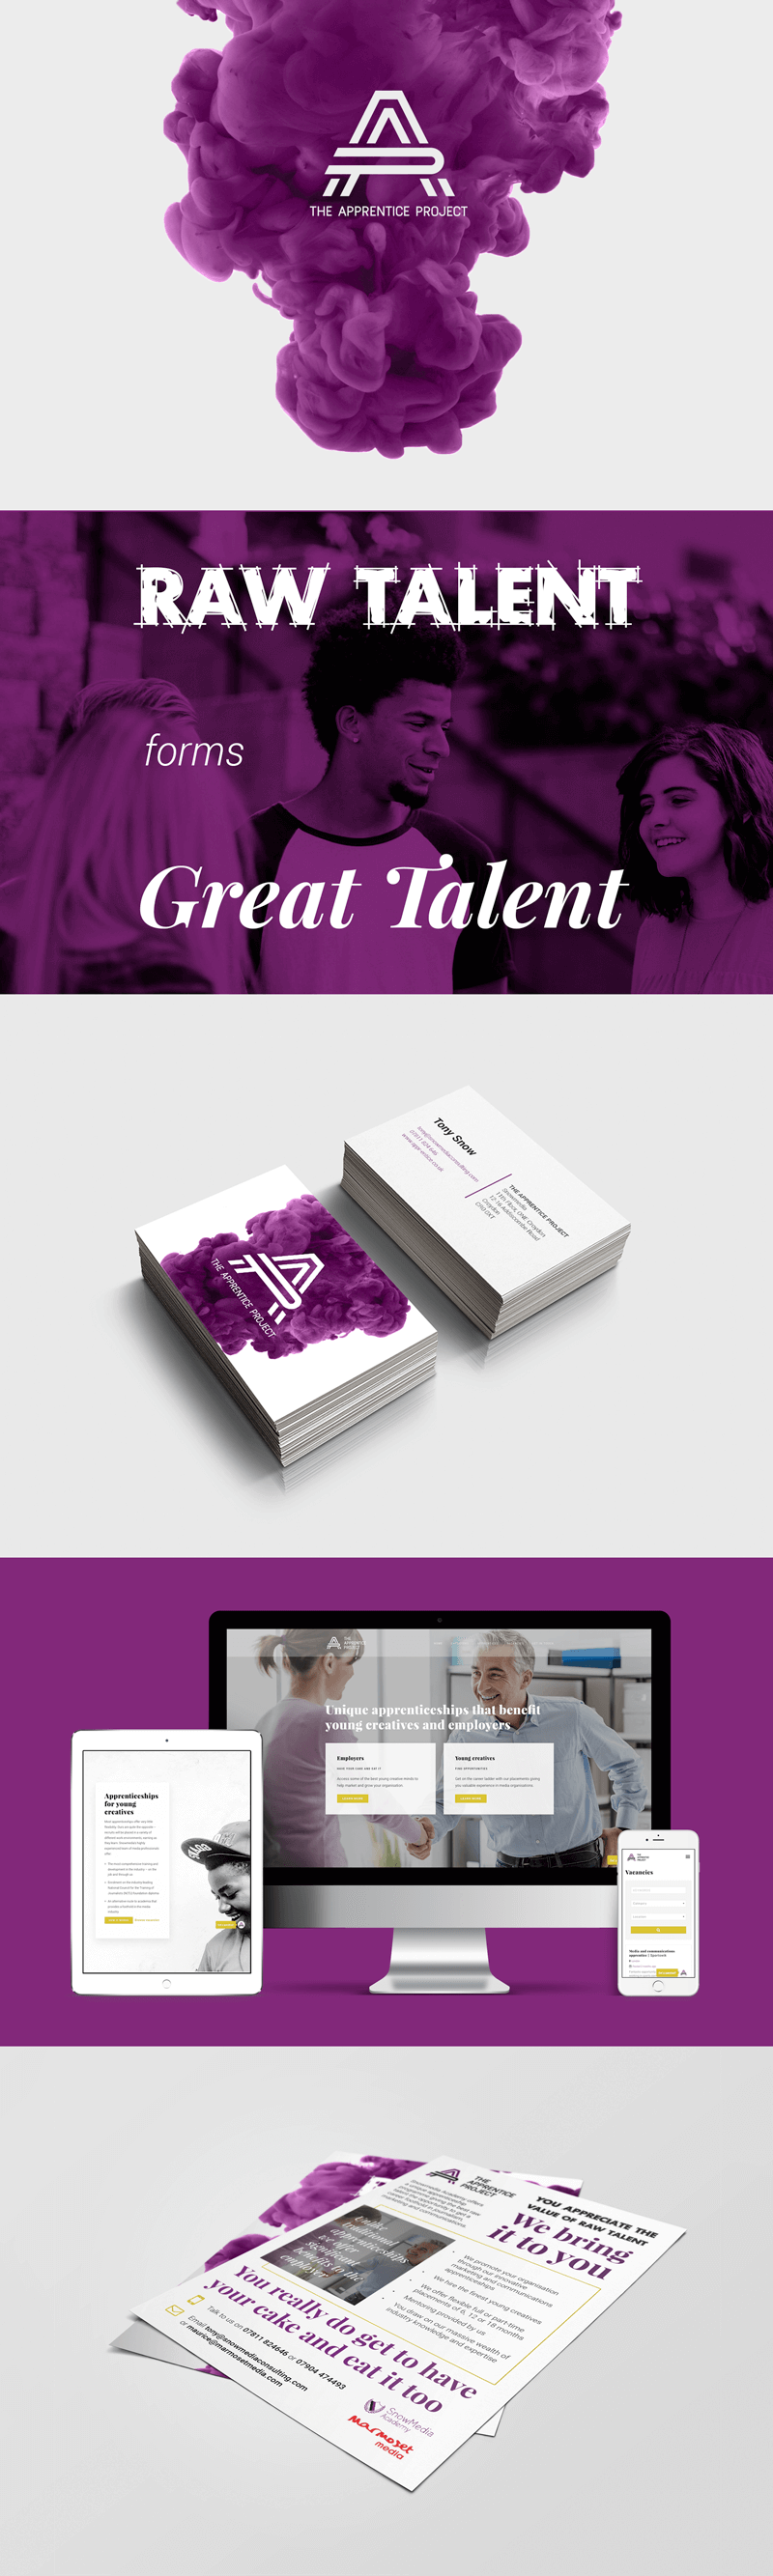 Apprentice Project AP logo on ink cloud - Raw Talent forms Great Talent - business card mockups, website mockups and flyer mockups